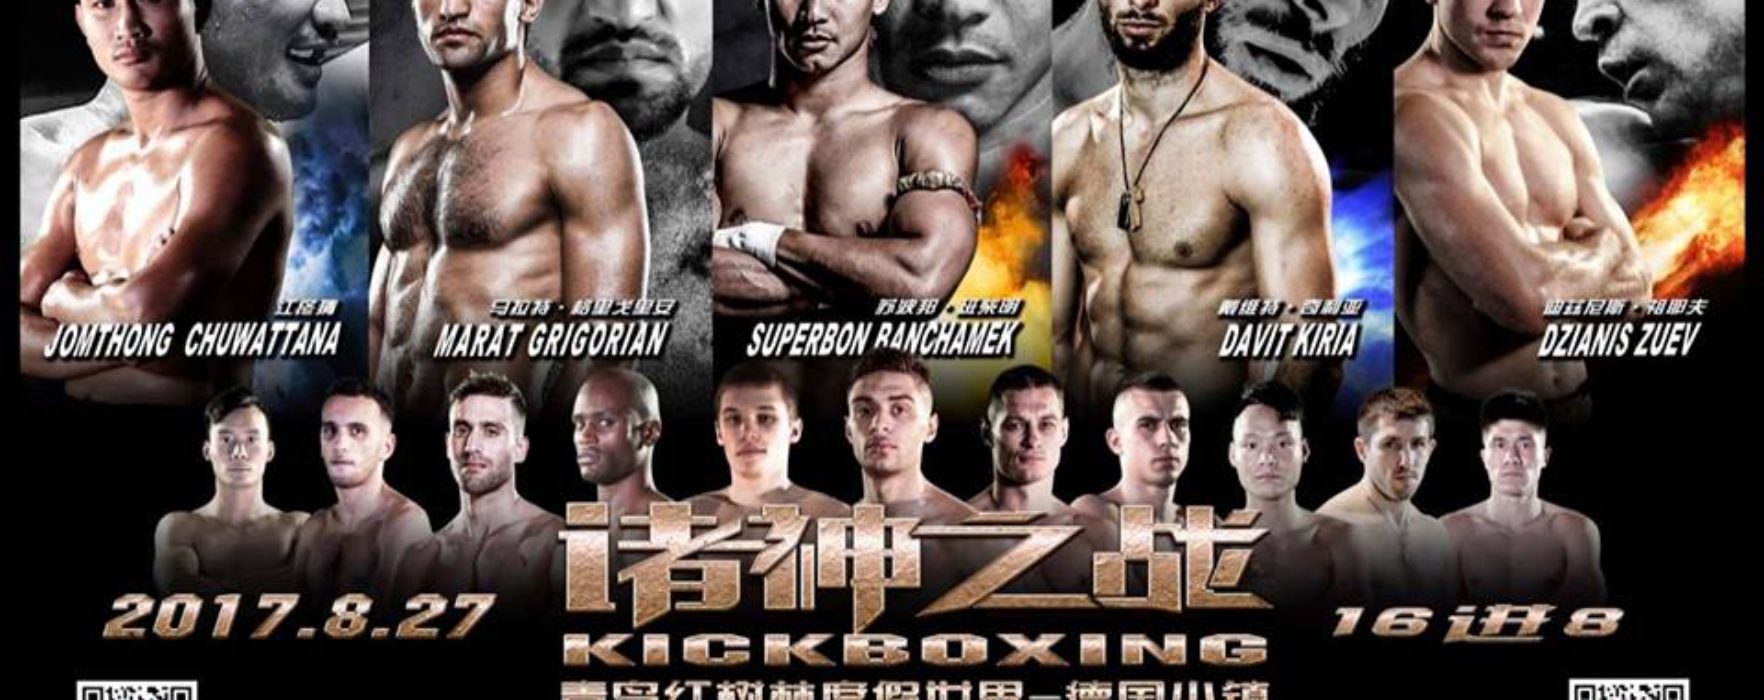 Kunlun Fight World Max Championship 4th edition/KLF 65 Clash of the Titans.